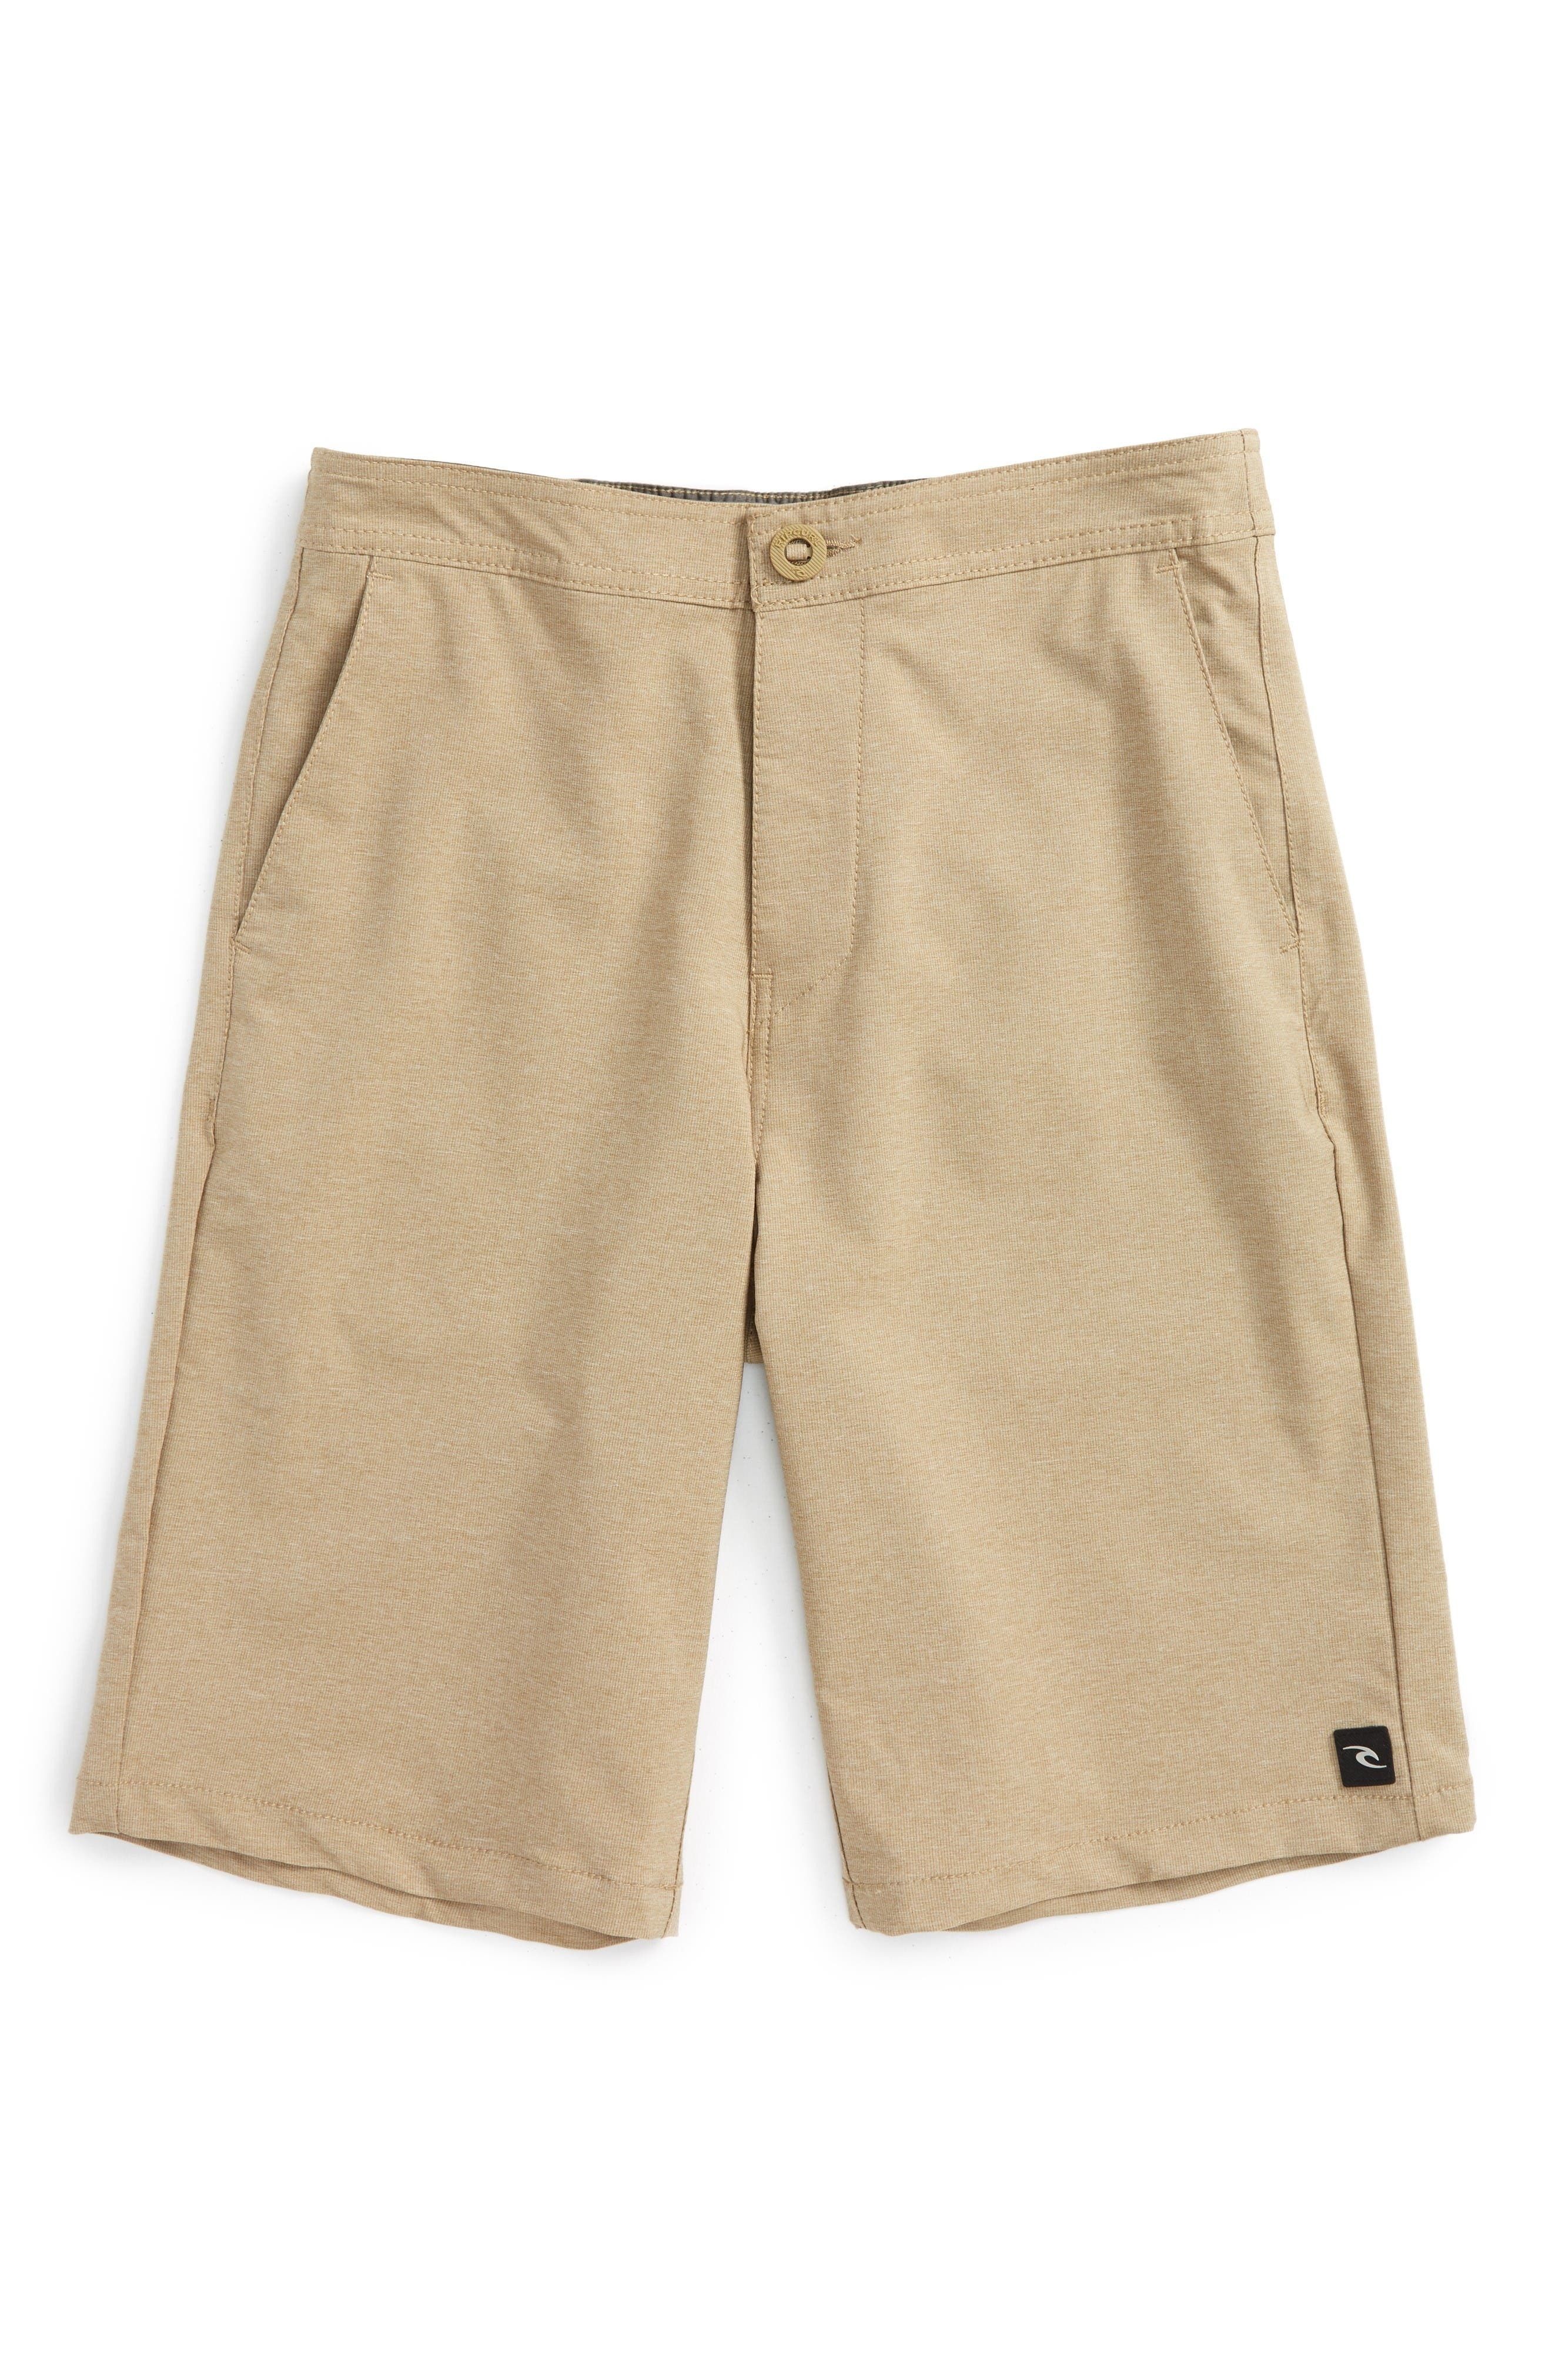 Rip Curl Omaha Hybrid Board Shorts (Toddler Boys, Little Boys & Big Boys)